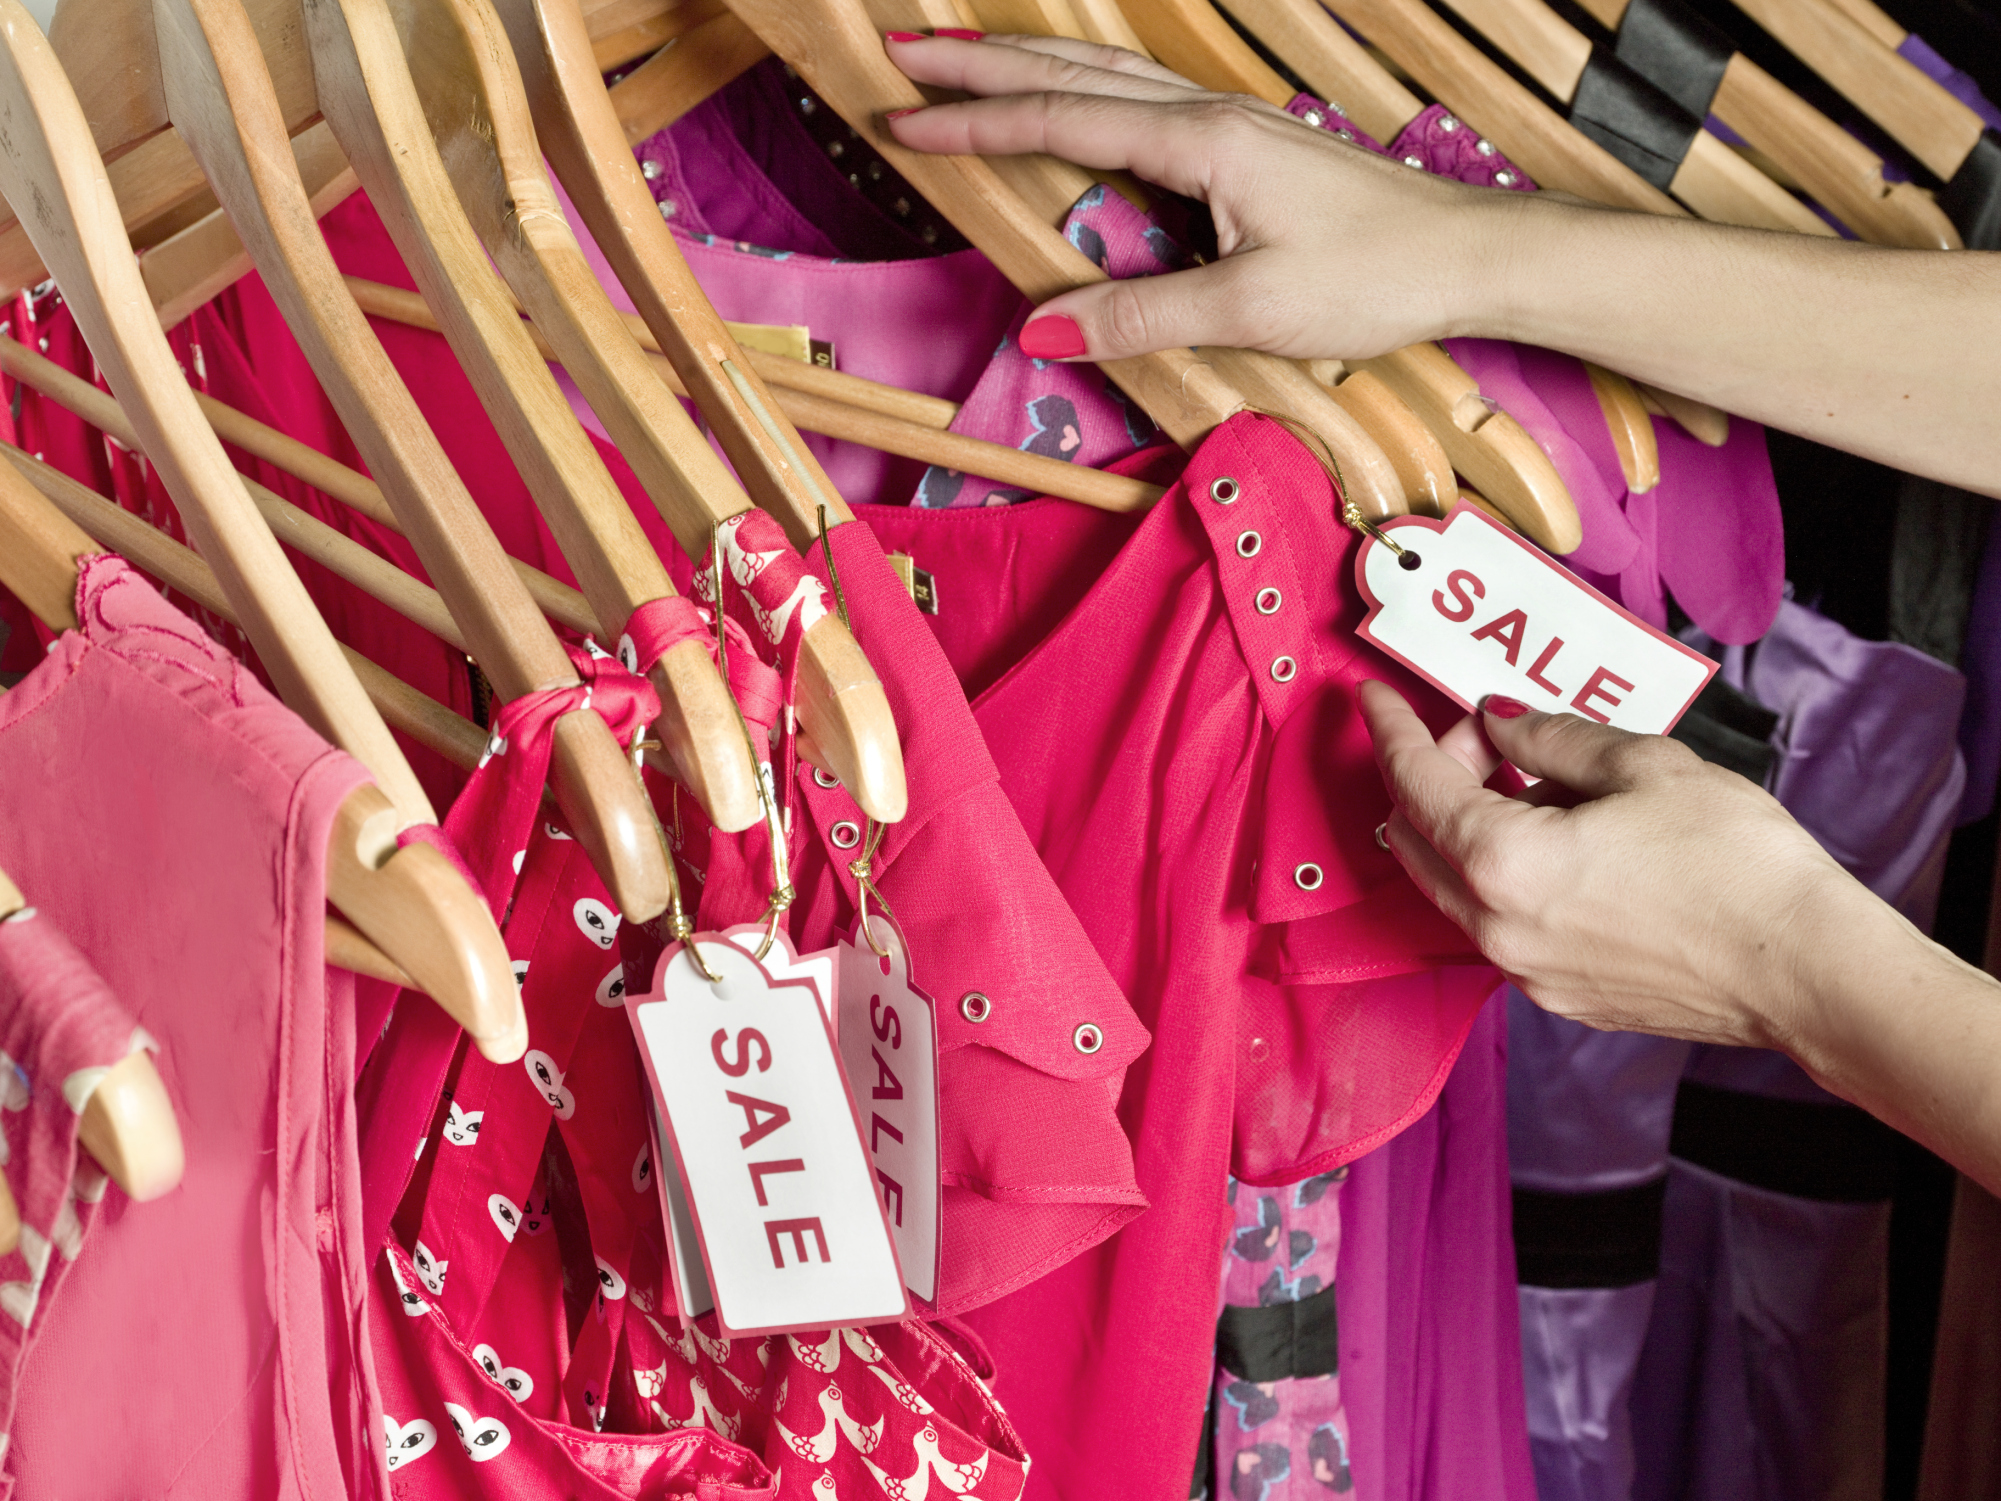 January Sales: How to Save Money, Score Deals